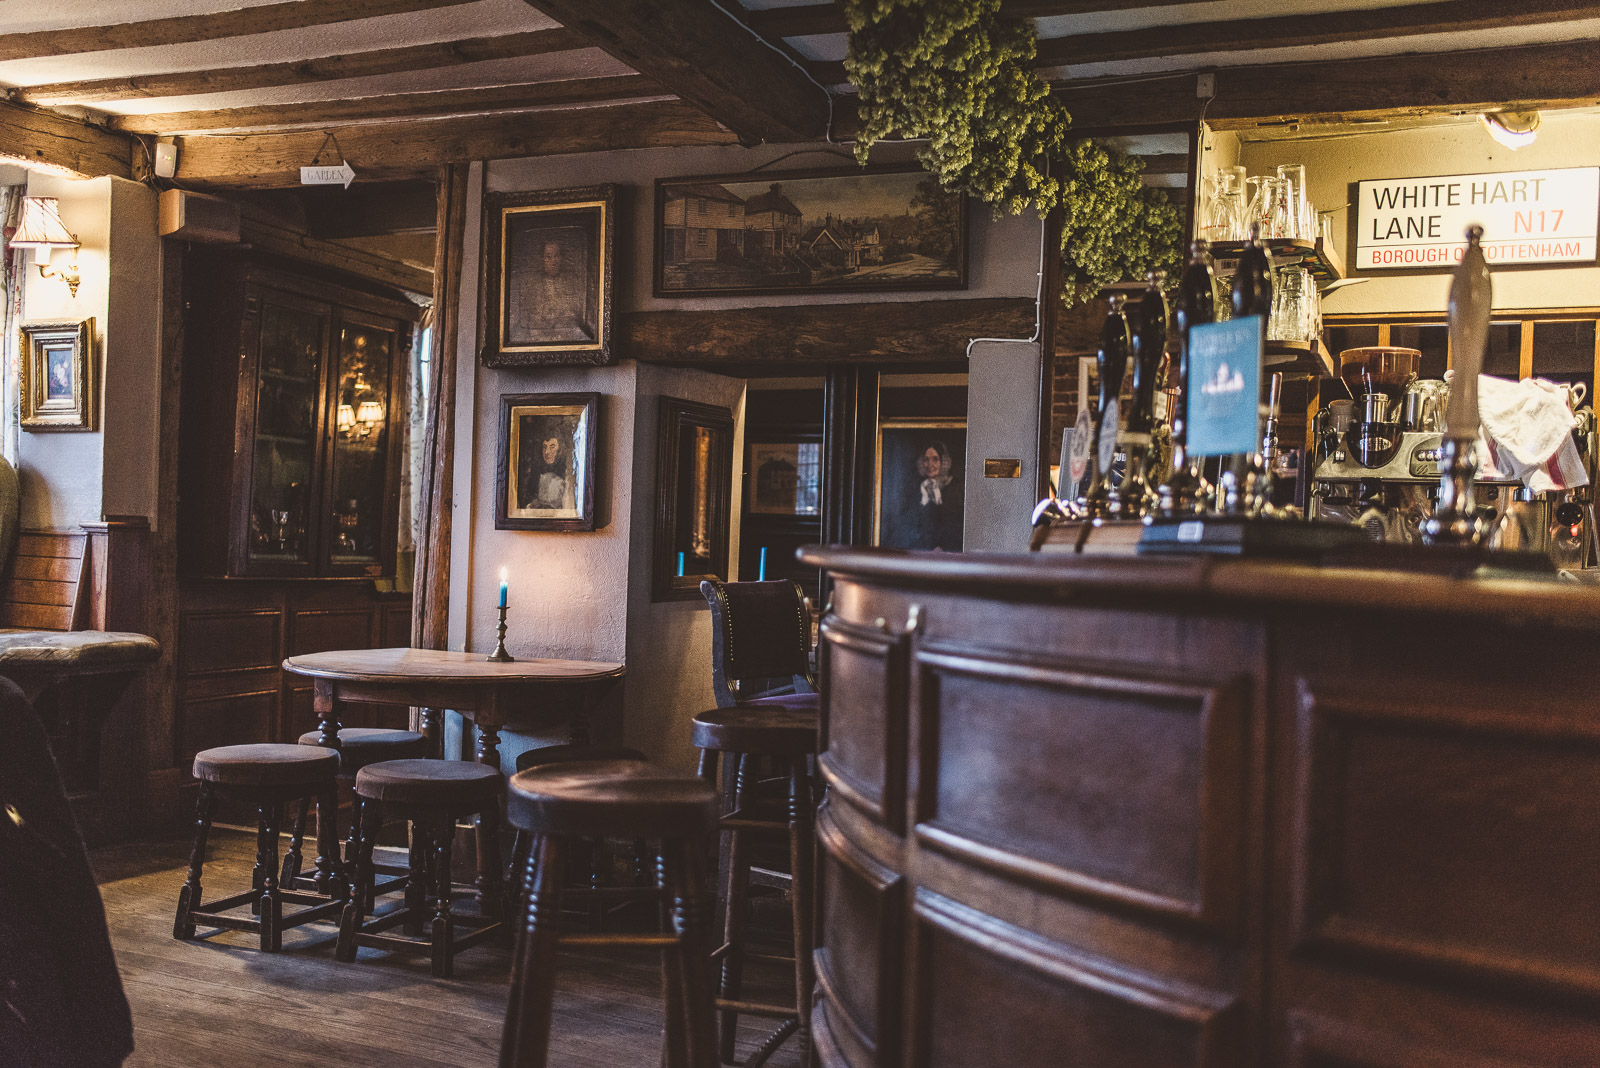 One of our fave spots we HAD LUNCH – The bull at benenden